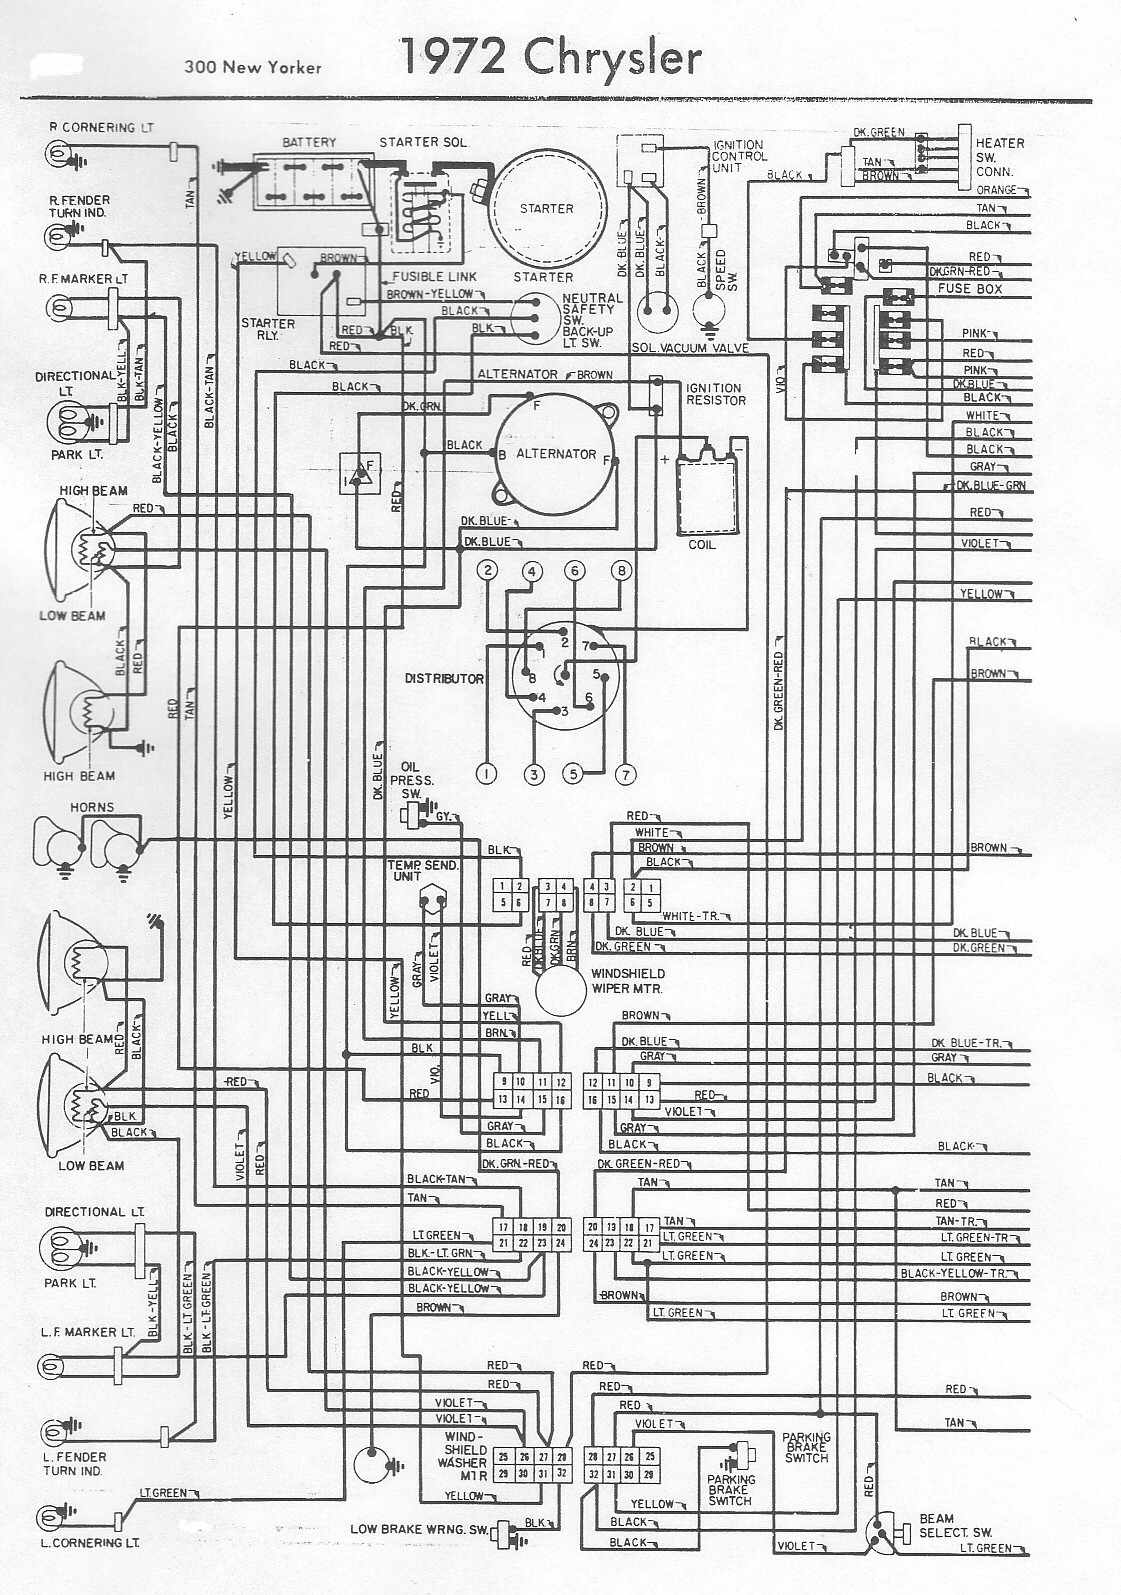 small resolution of 1954 mopar wiring diagrams simple wiring post mymopar wiring diagram 1954 chrysler wiring diagram data